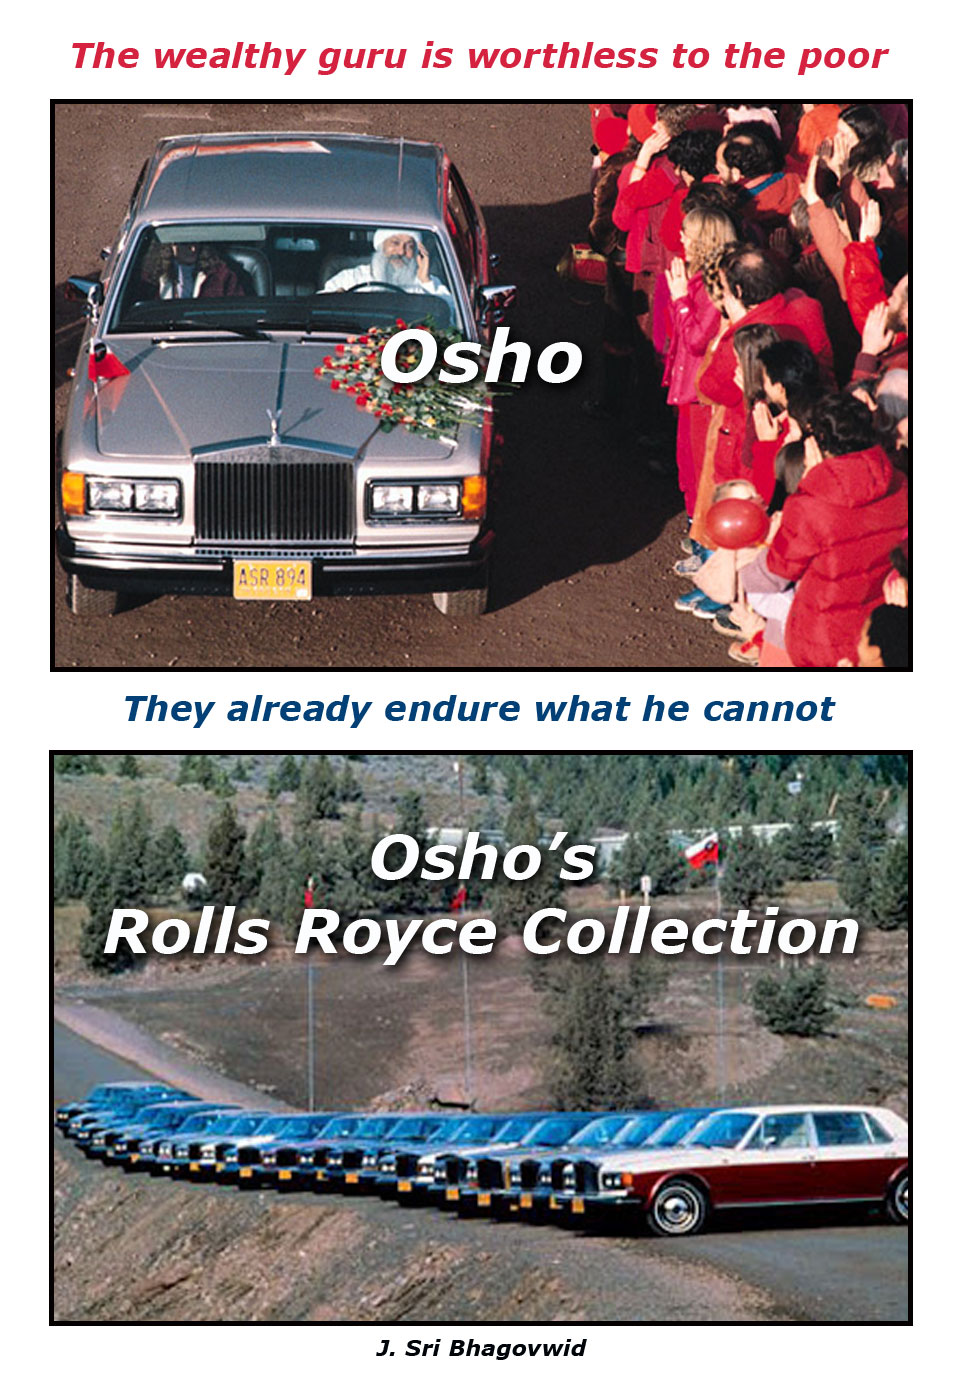 Osho A No Show With 90 Rolls Royces Art Amp Criticism